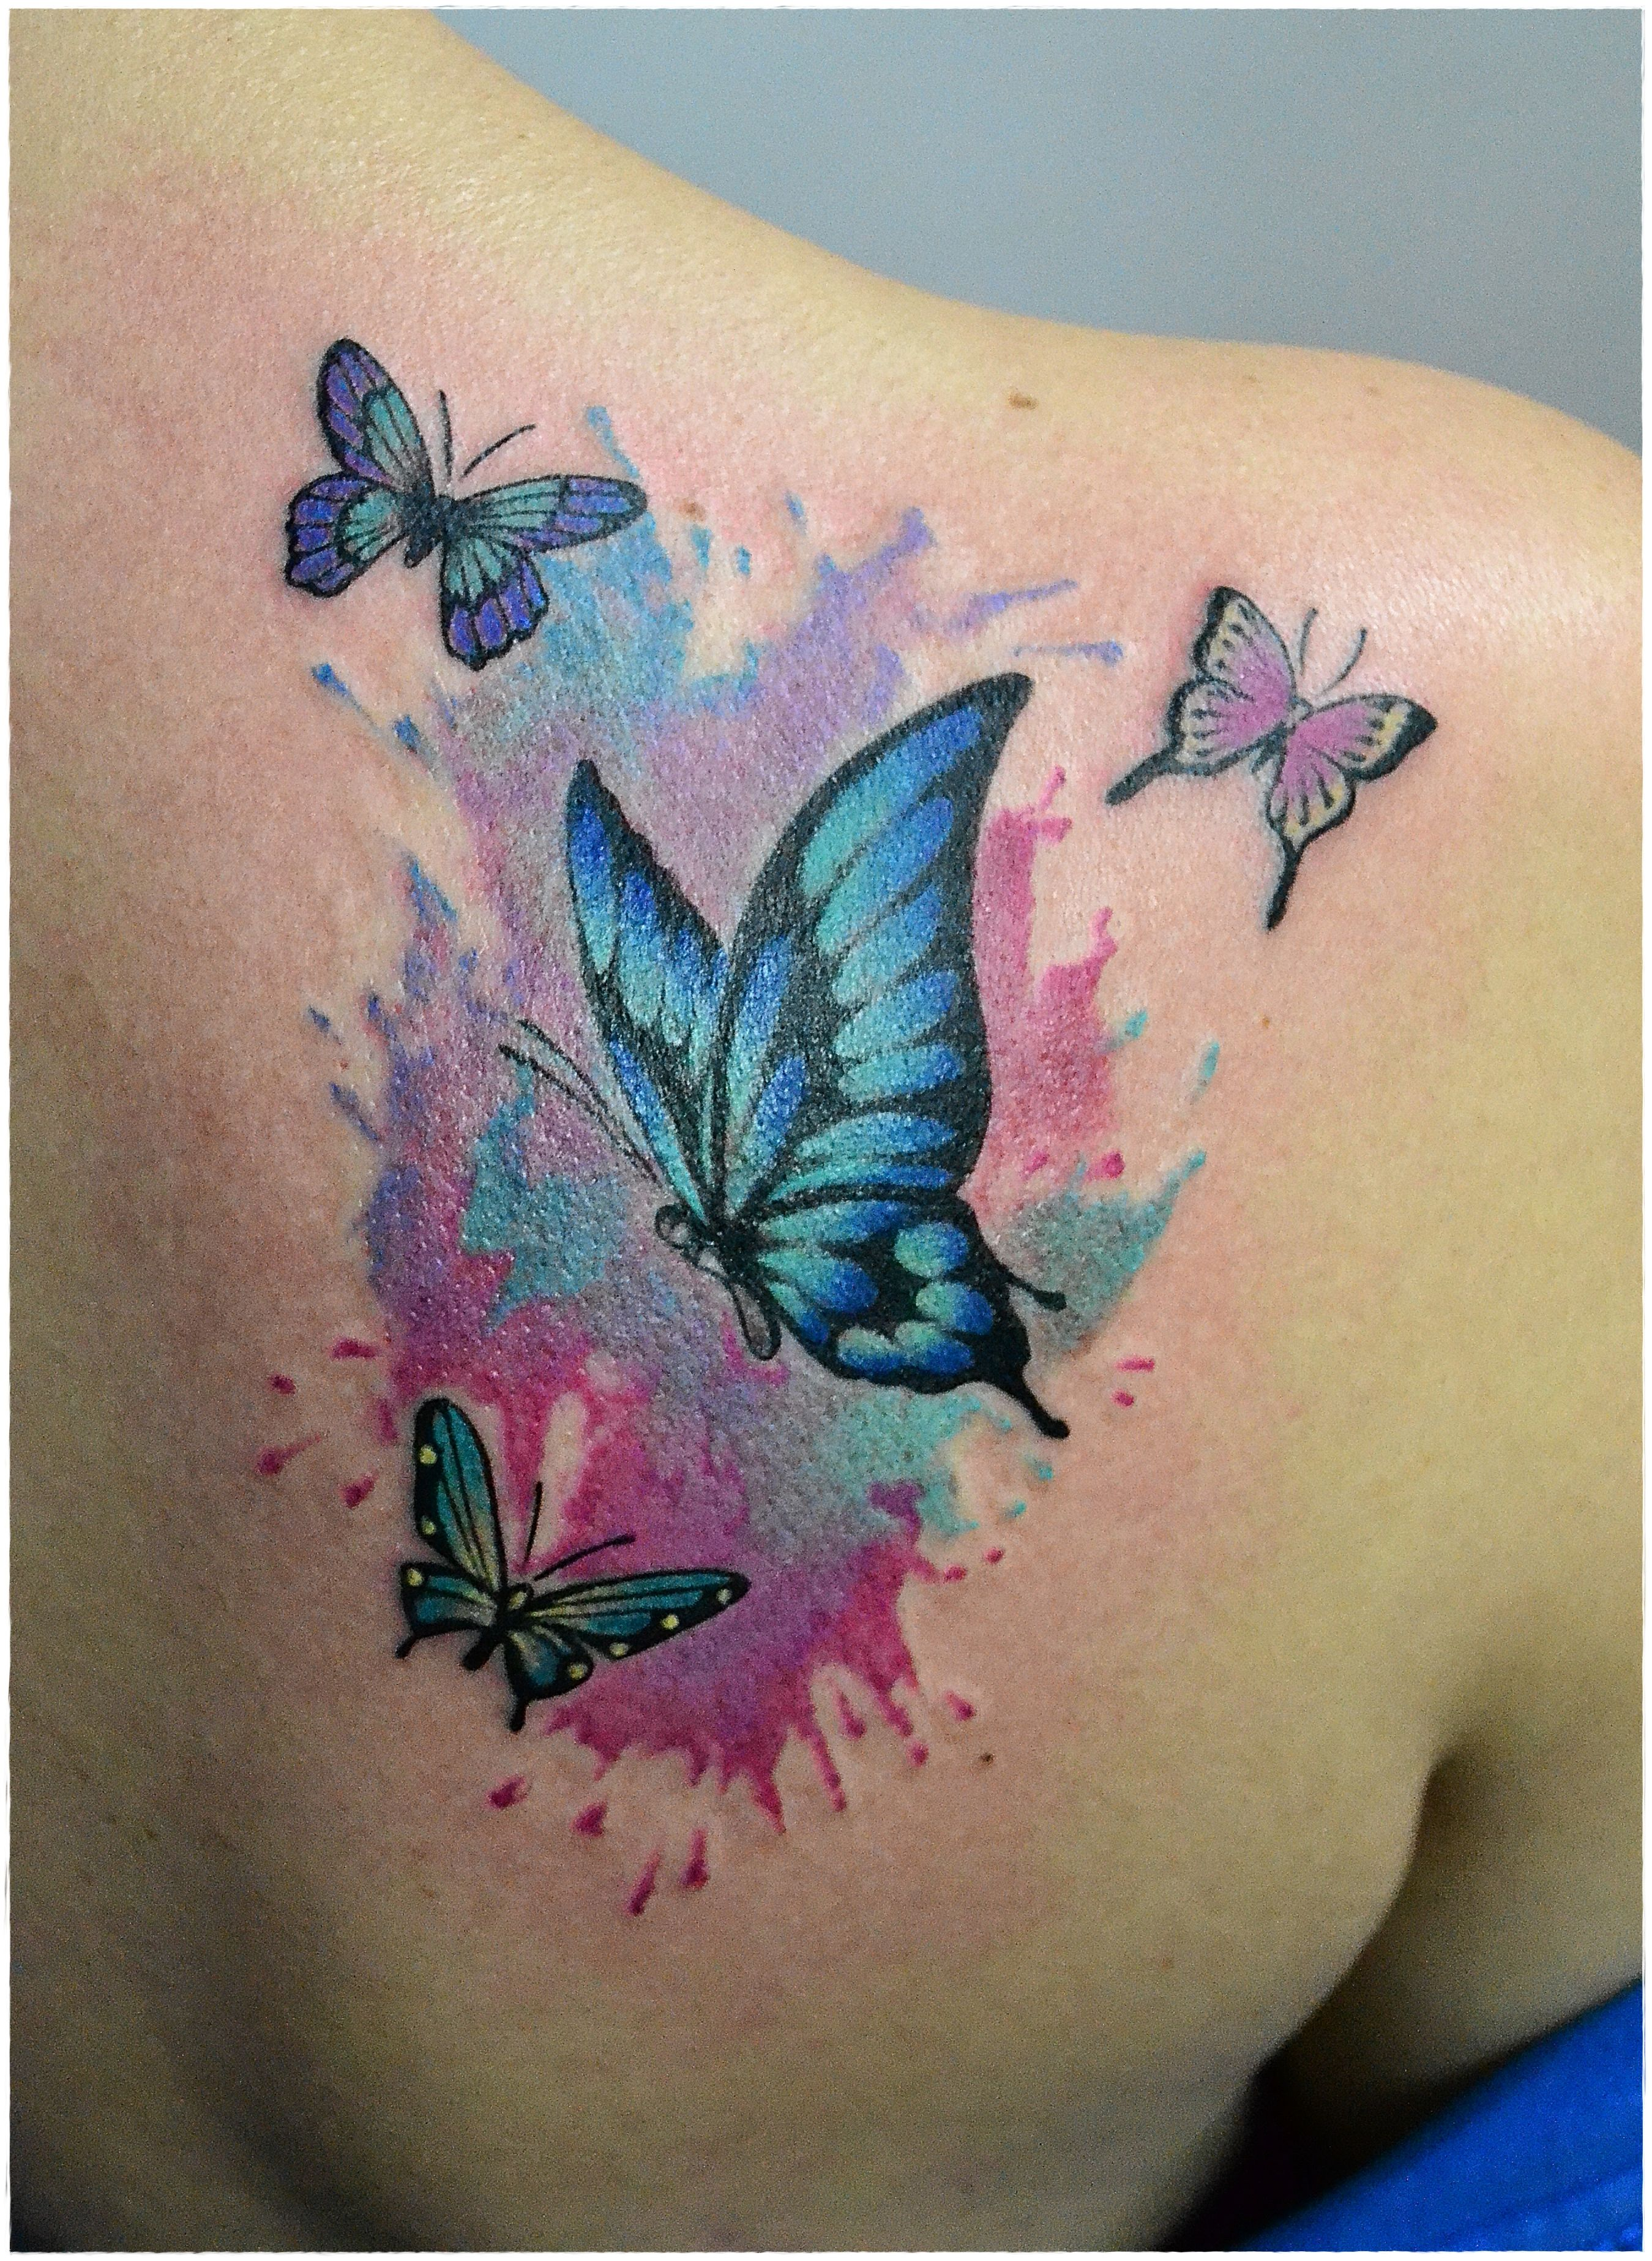 Butterfly star tattoo designs - Watercolor Butterfly Tattoo